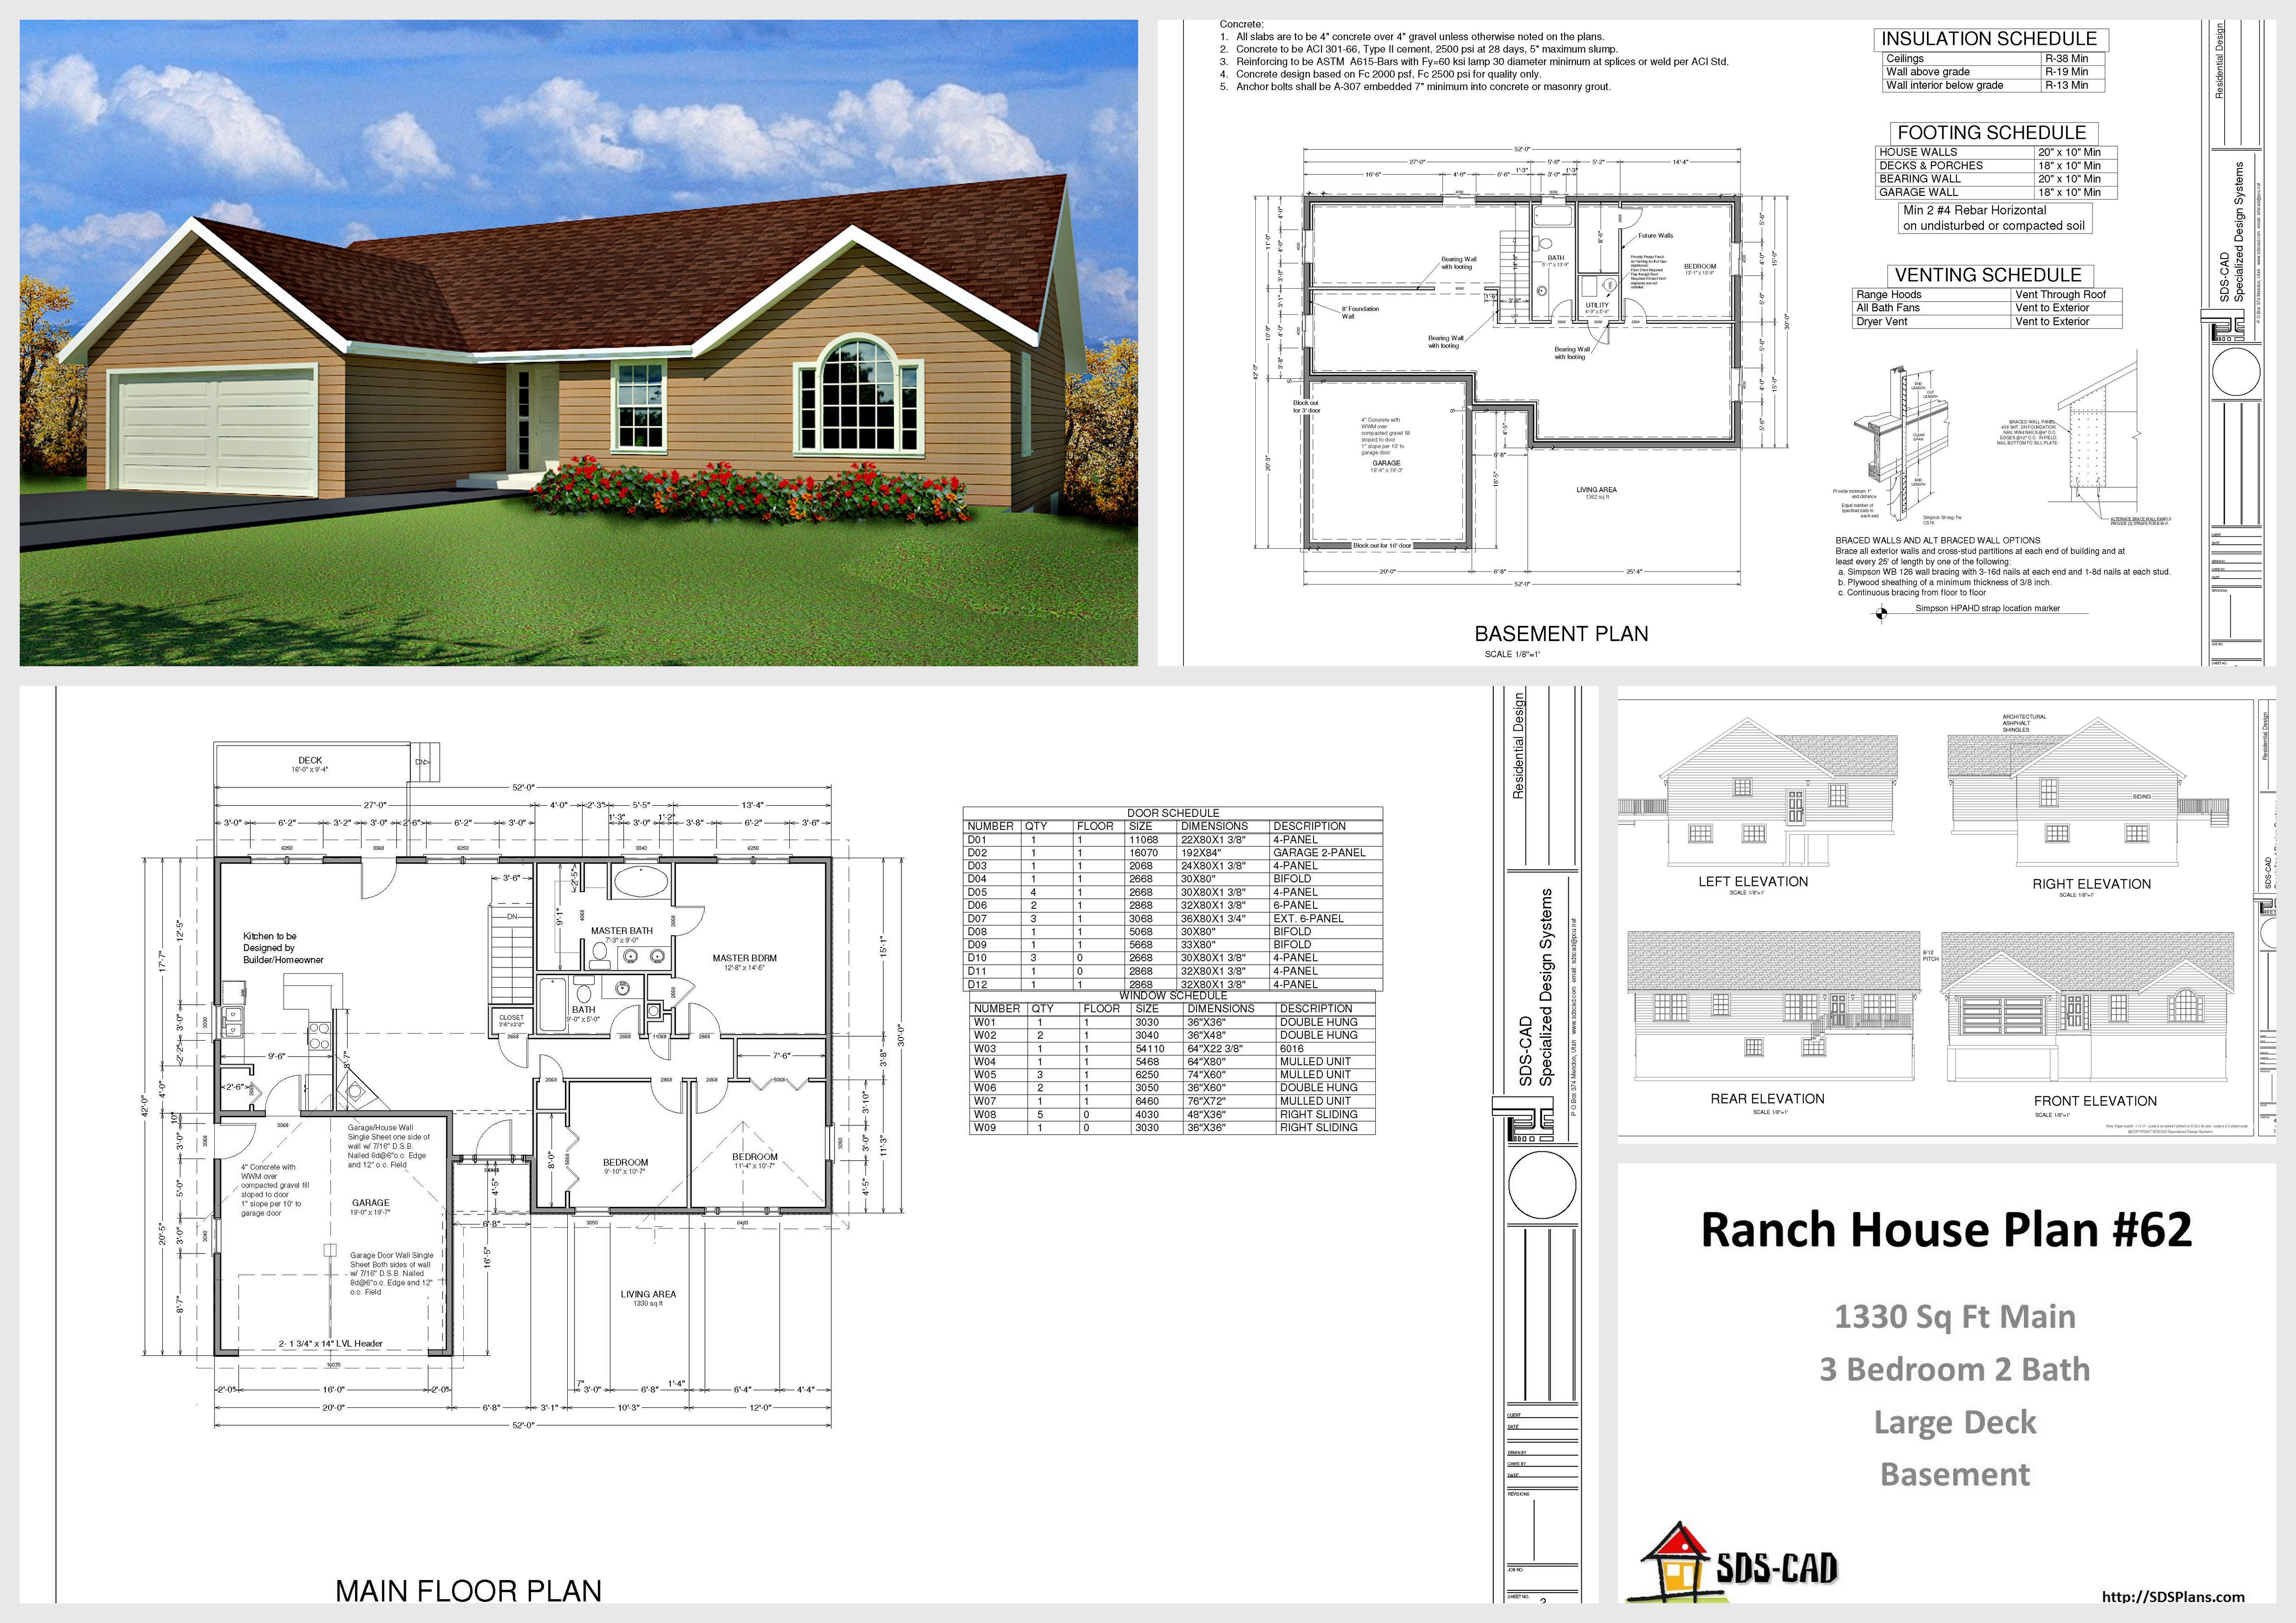 Free House Plans For Autocad 2 And Cabin Dwg plans plan custom home design autocad dwg and pdf bddbefedb cad